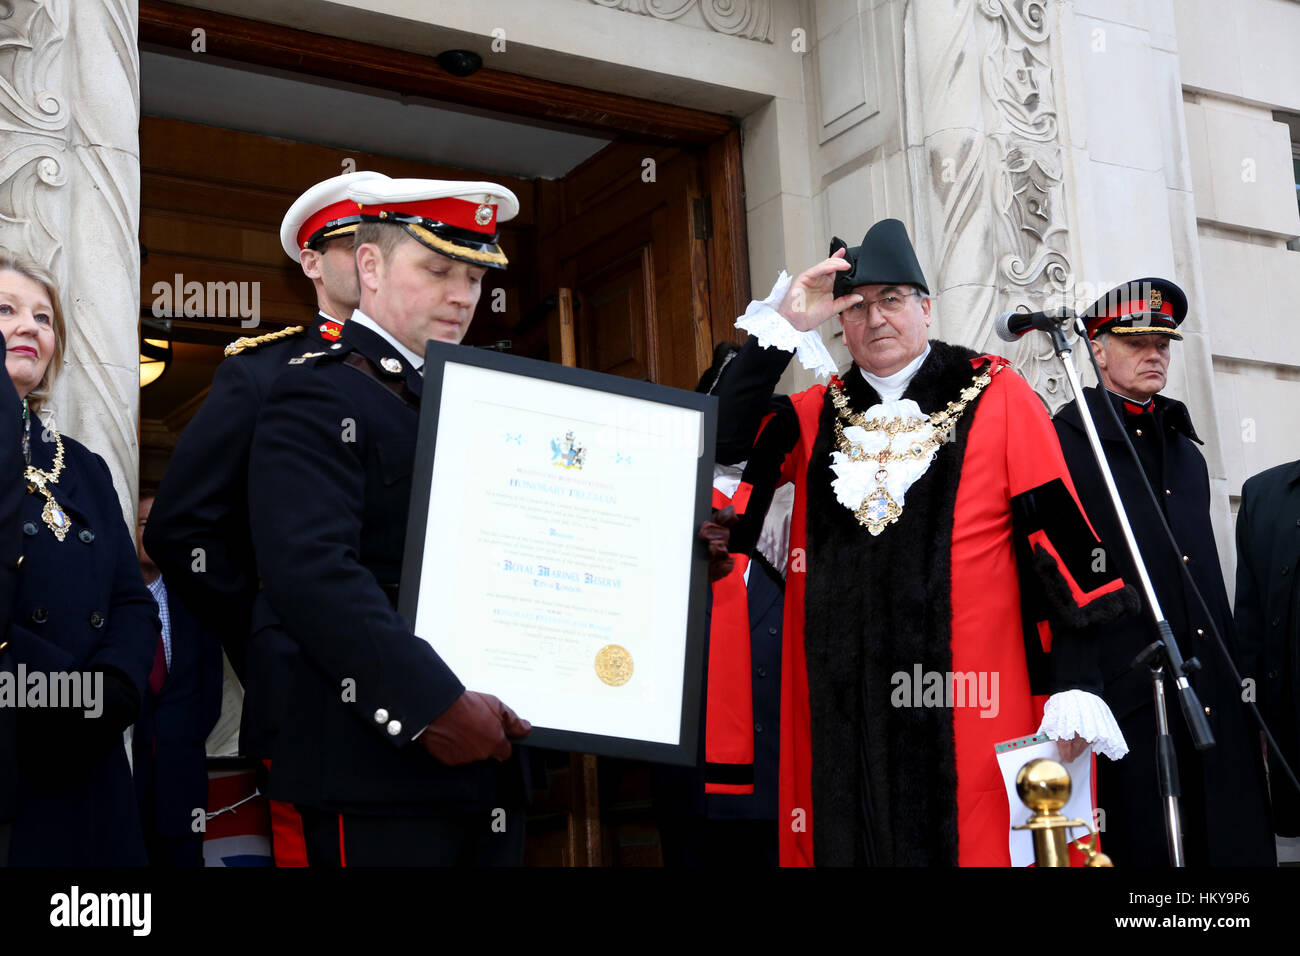 Lieutenant Colonel E Moorhouse RM certificate of the freedom of the borough of Wandsworth, Mayor of Wandsworth, - Stock Image